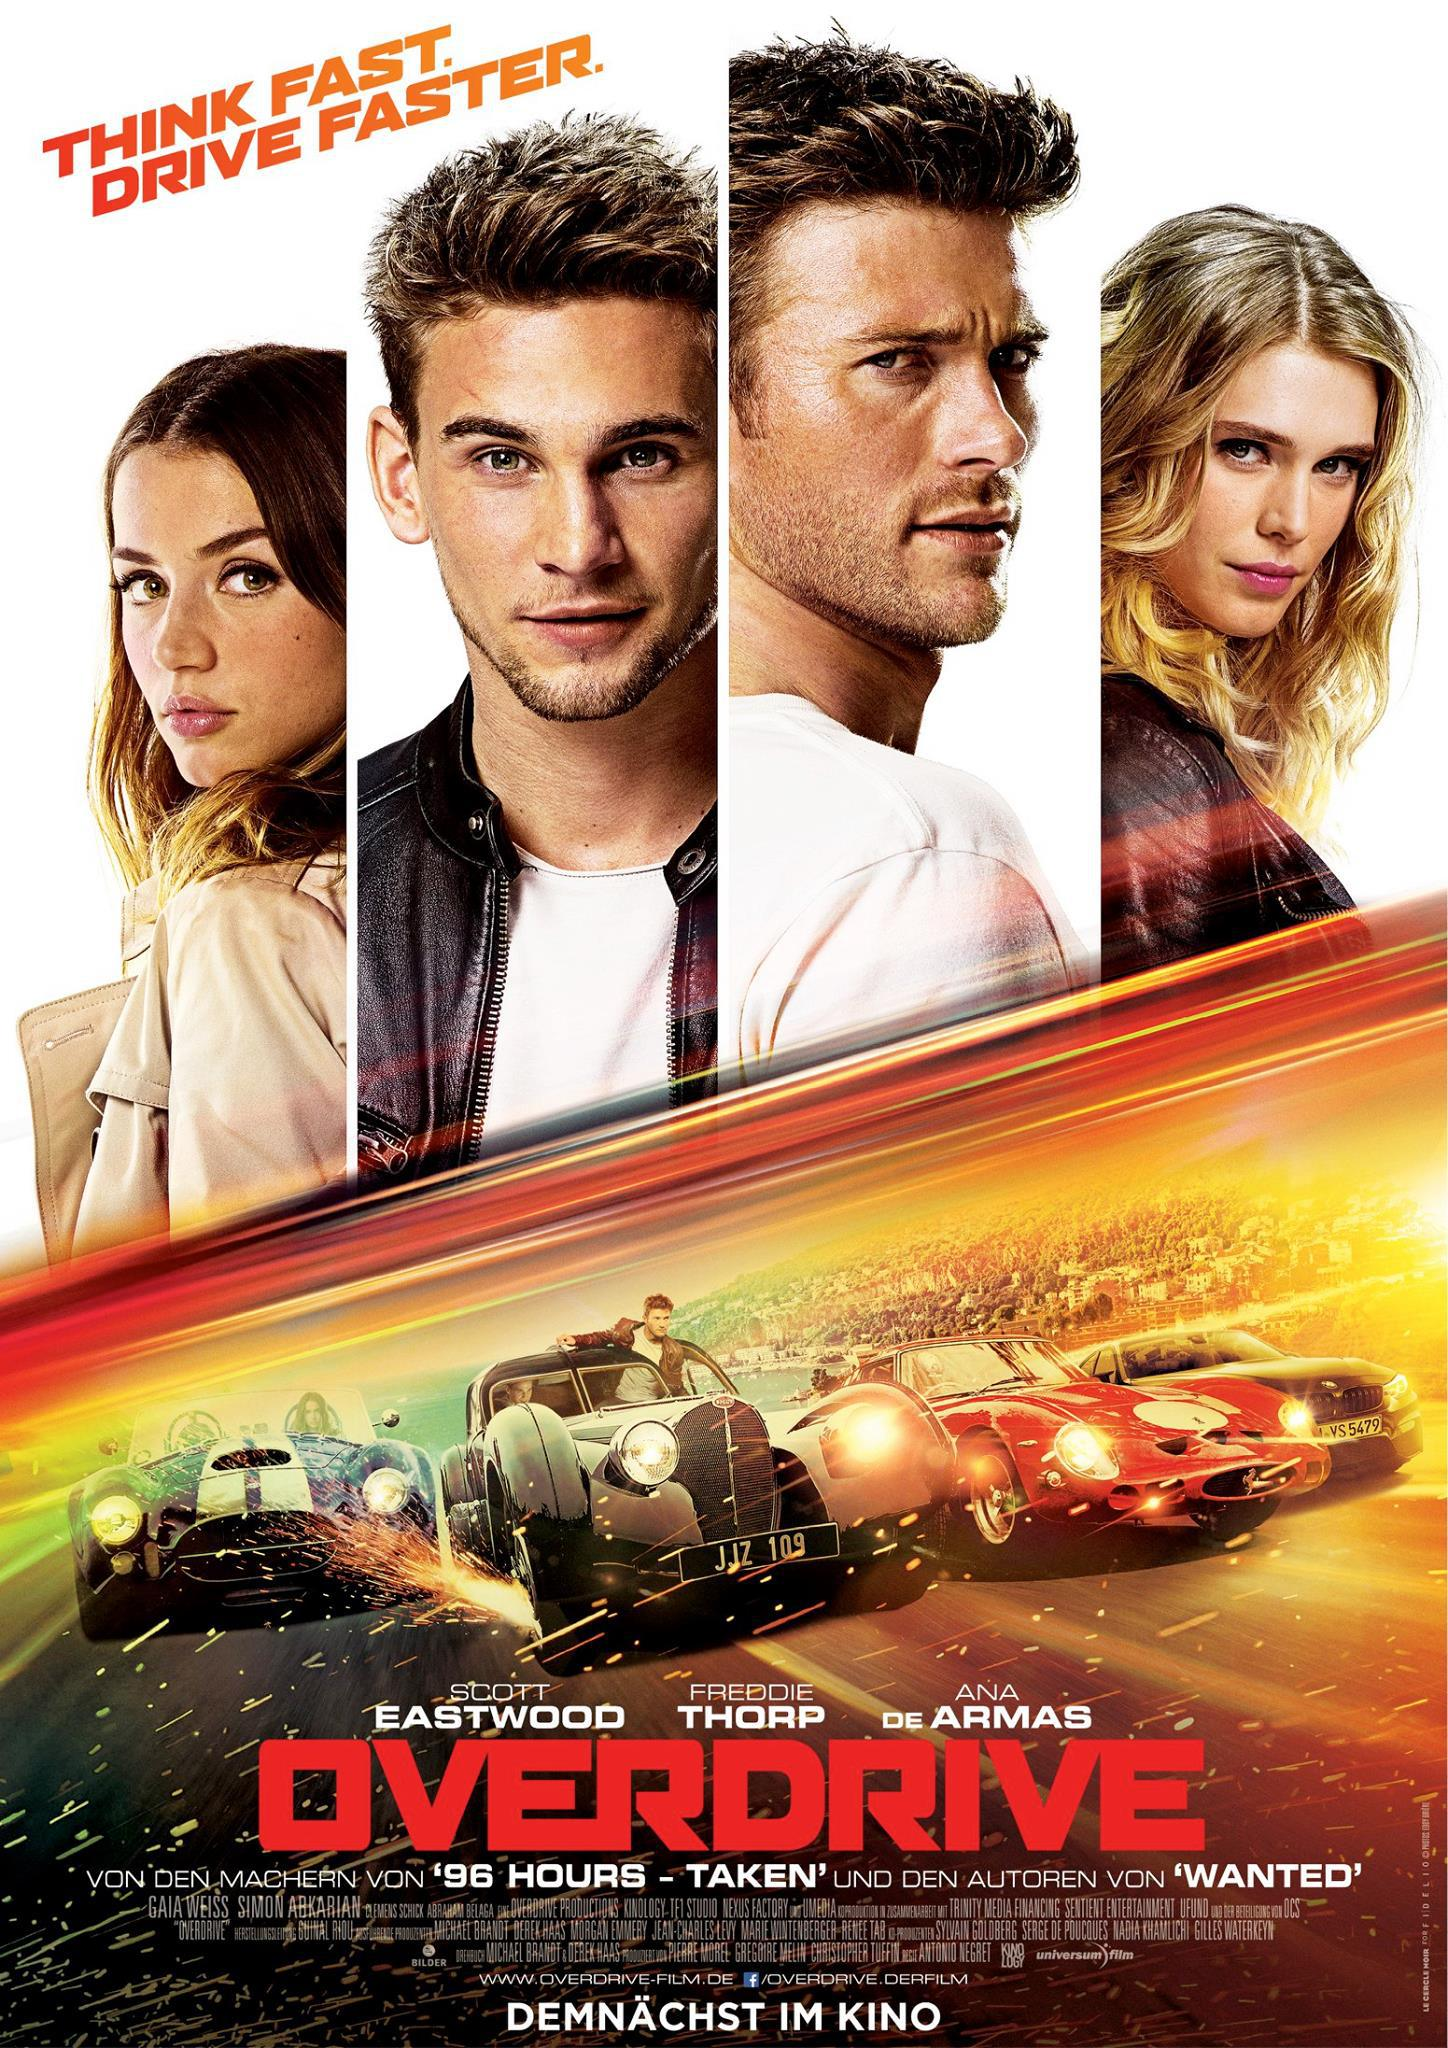 Overdrive movie poster